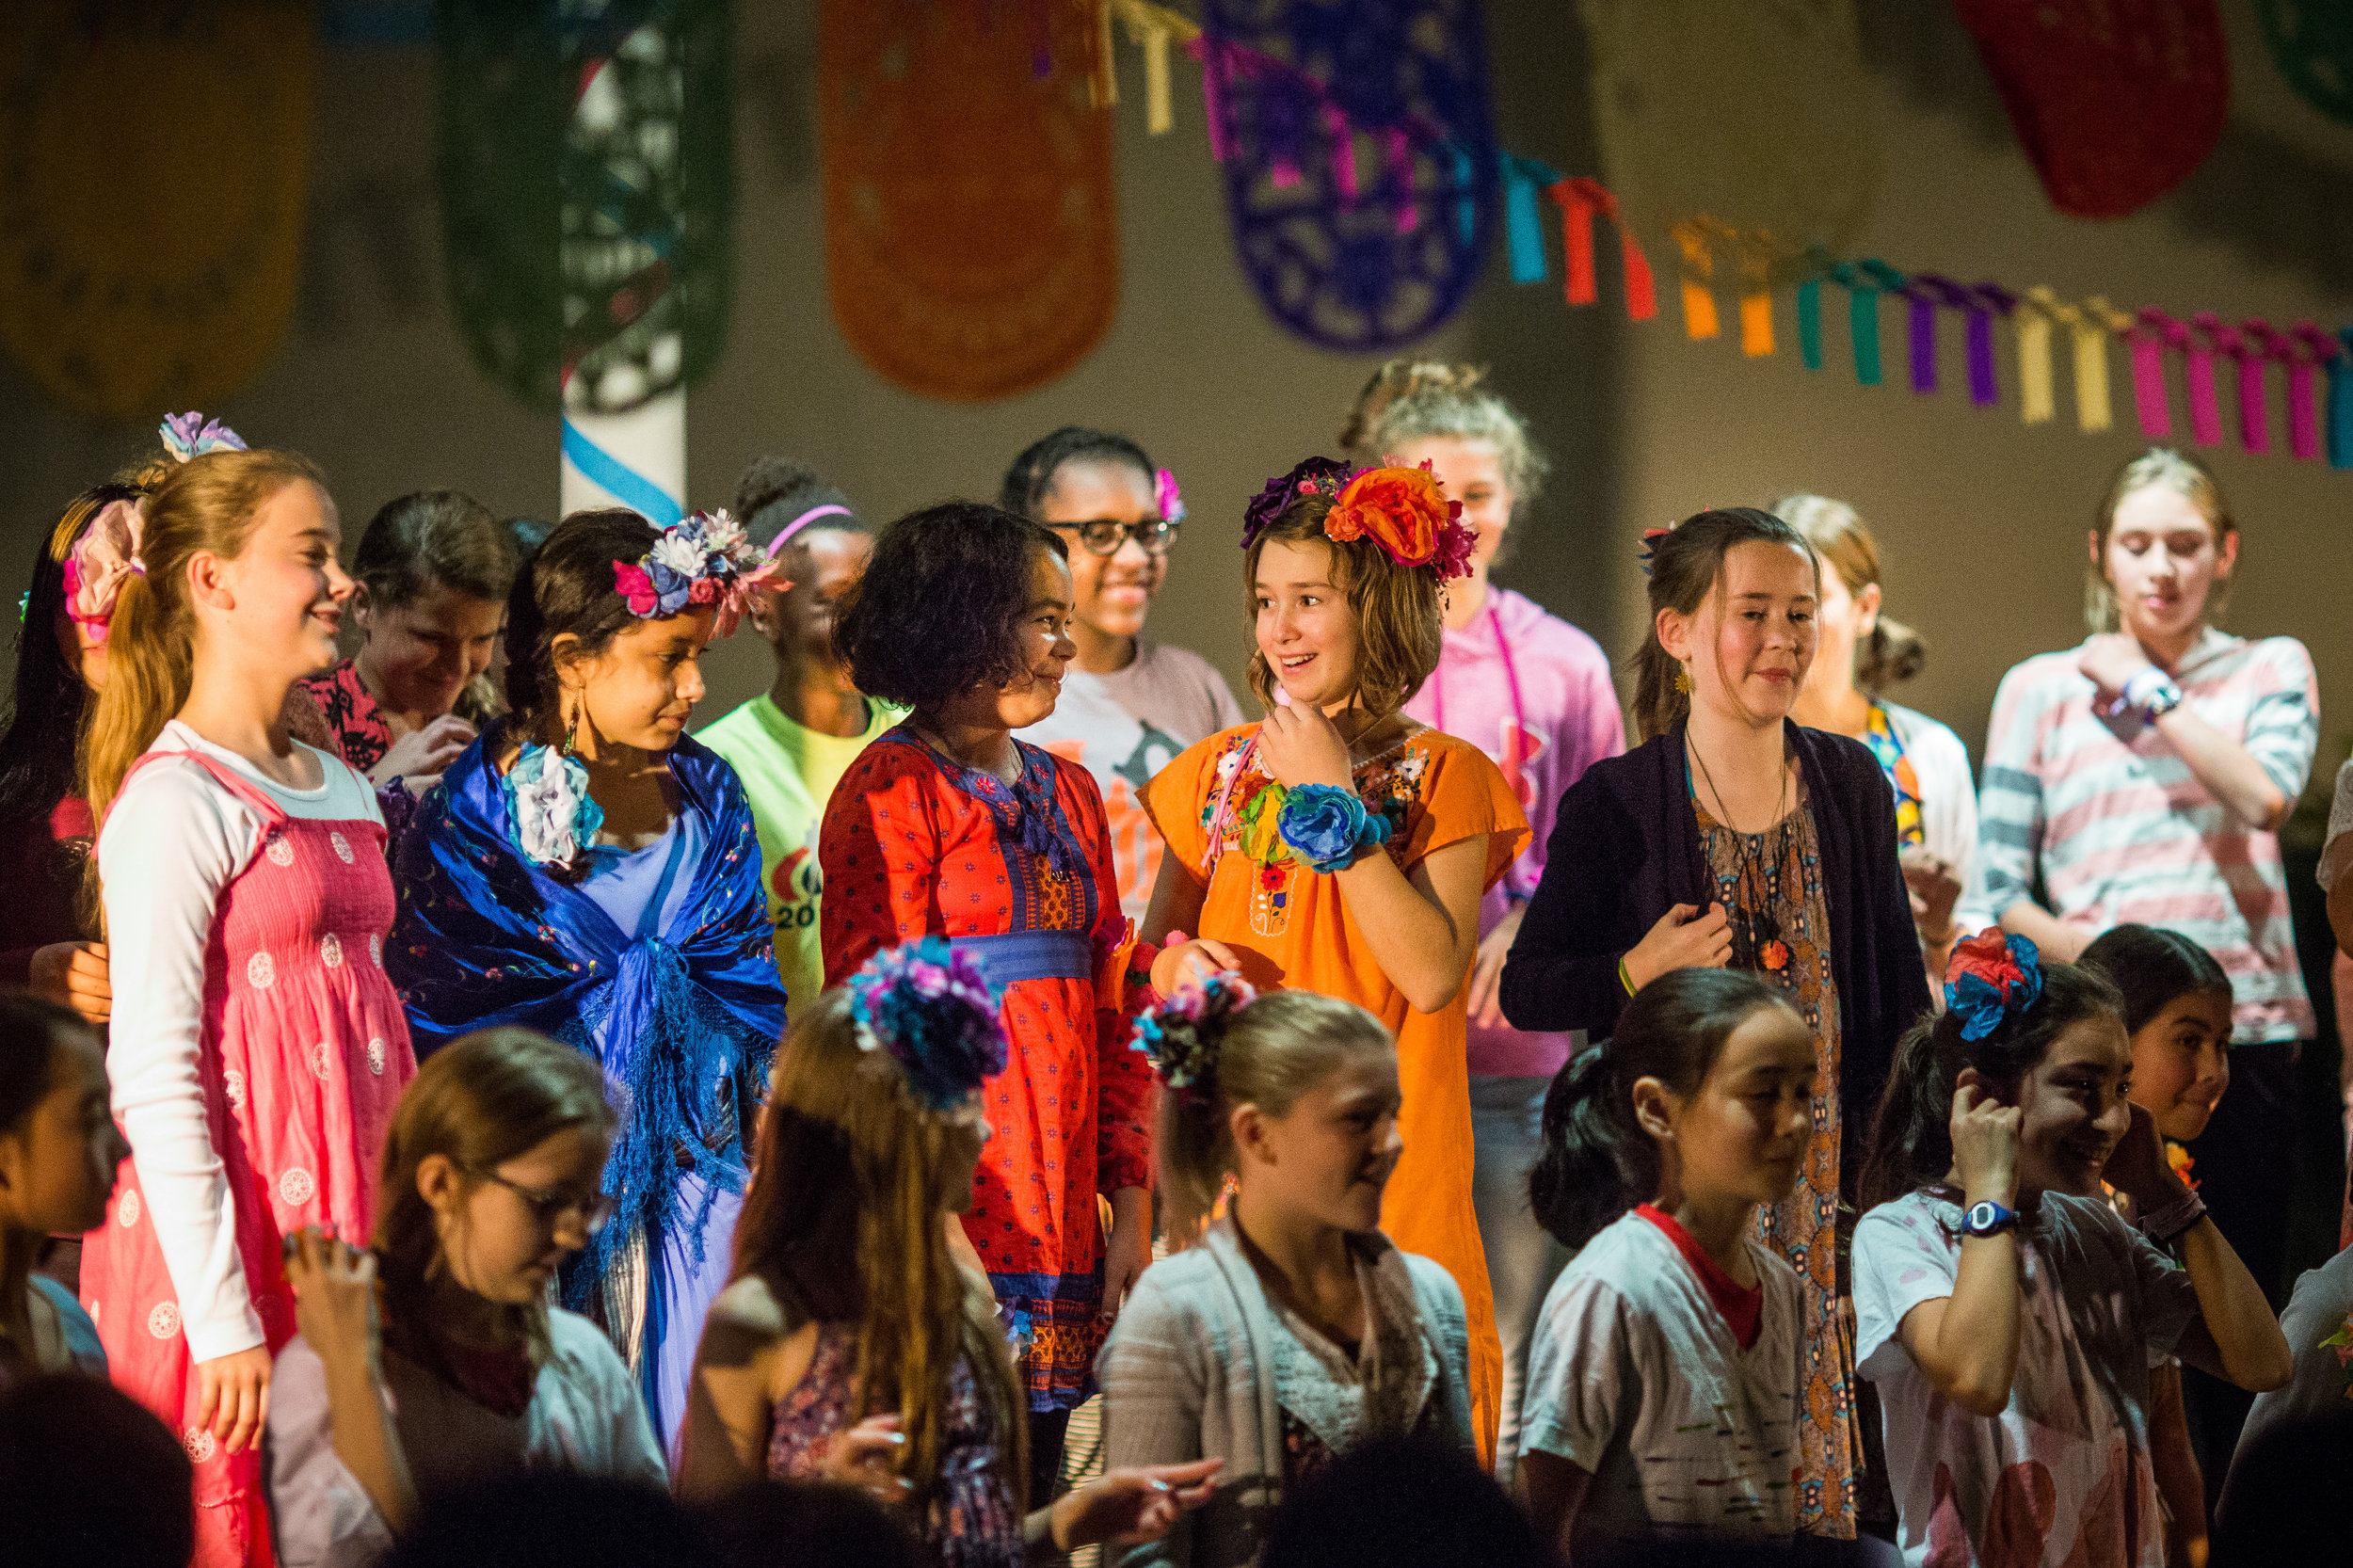 Students perform at 2016/2017 Festival de Otoño, a celebration on Latin culture.